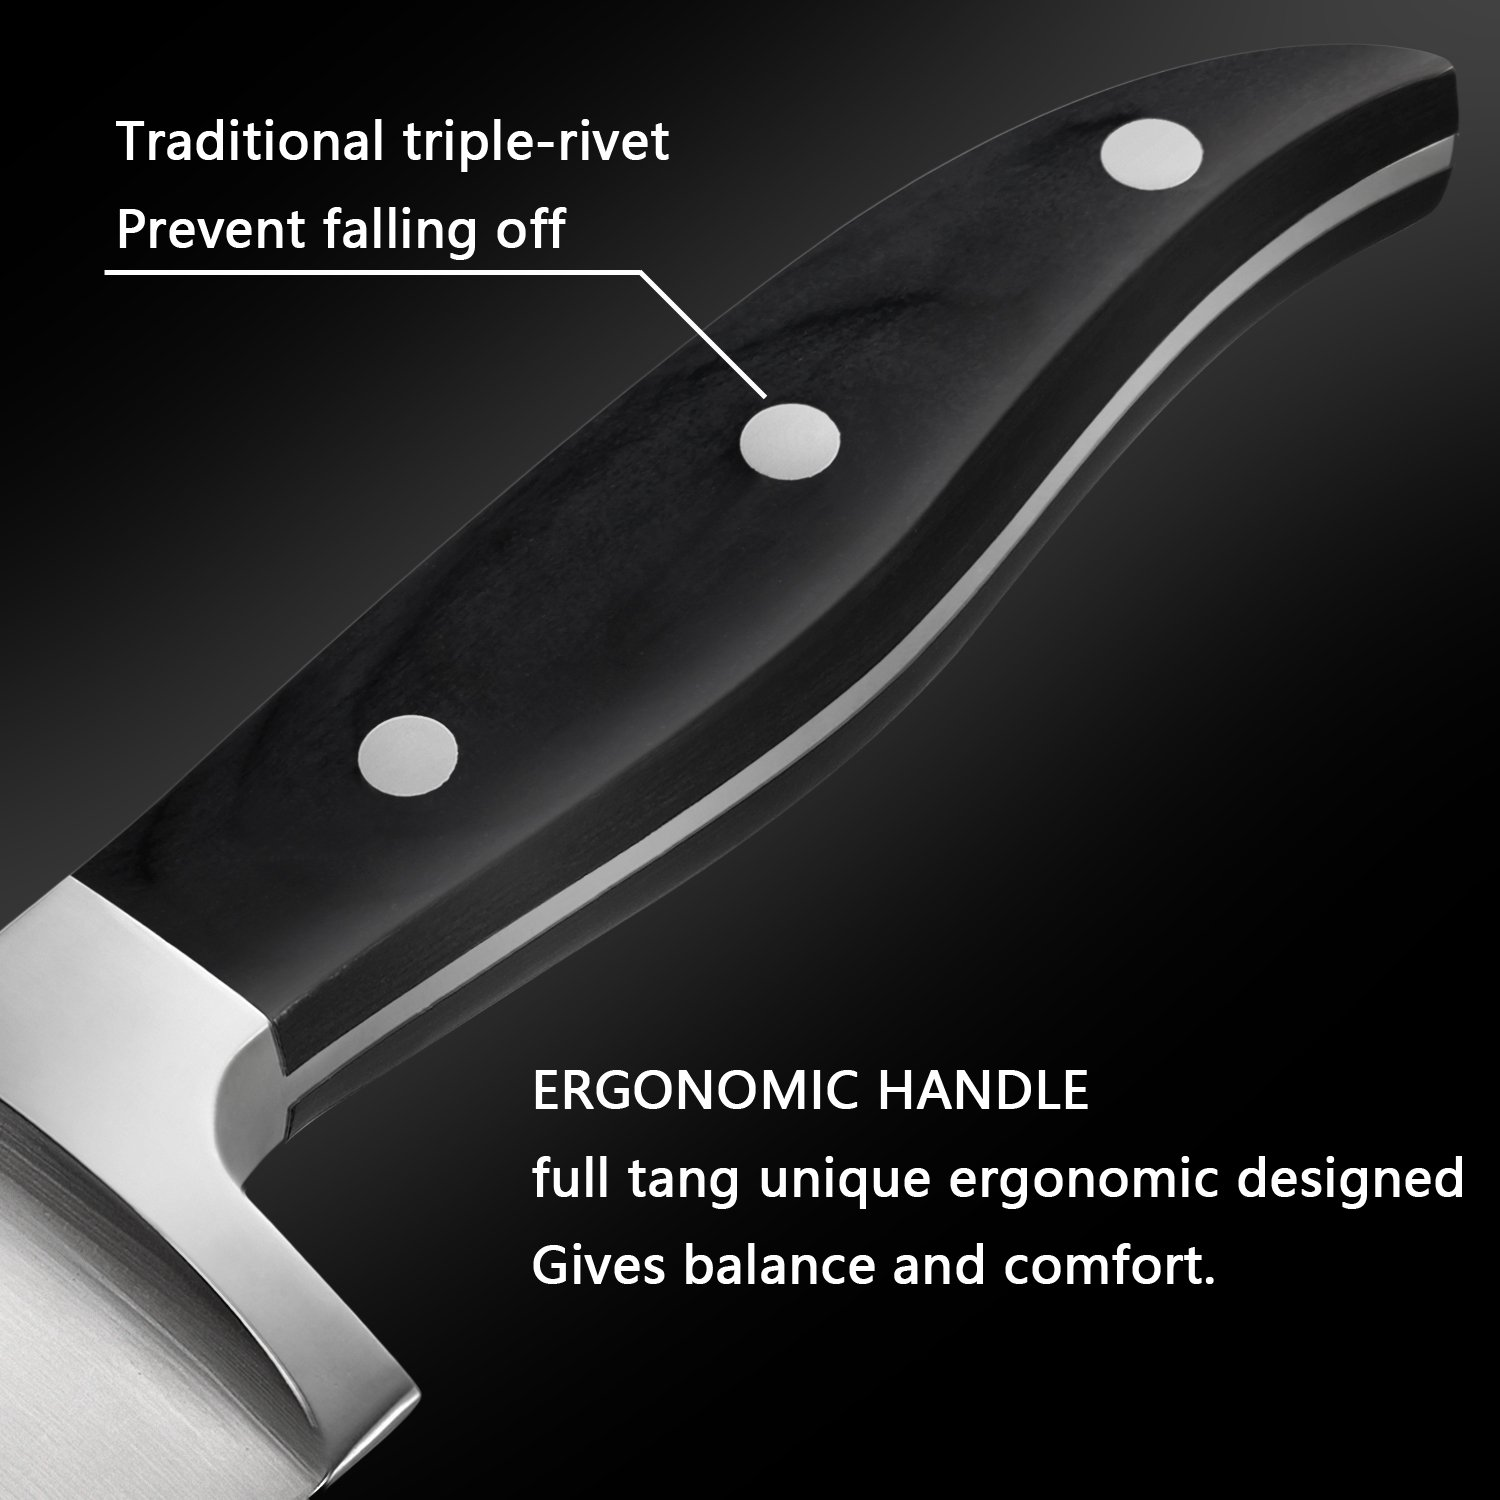 Amazon.com: tabnovo, cuchillo de chef 8 inches – Cuchillo de ...